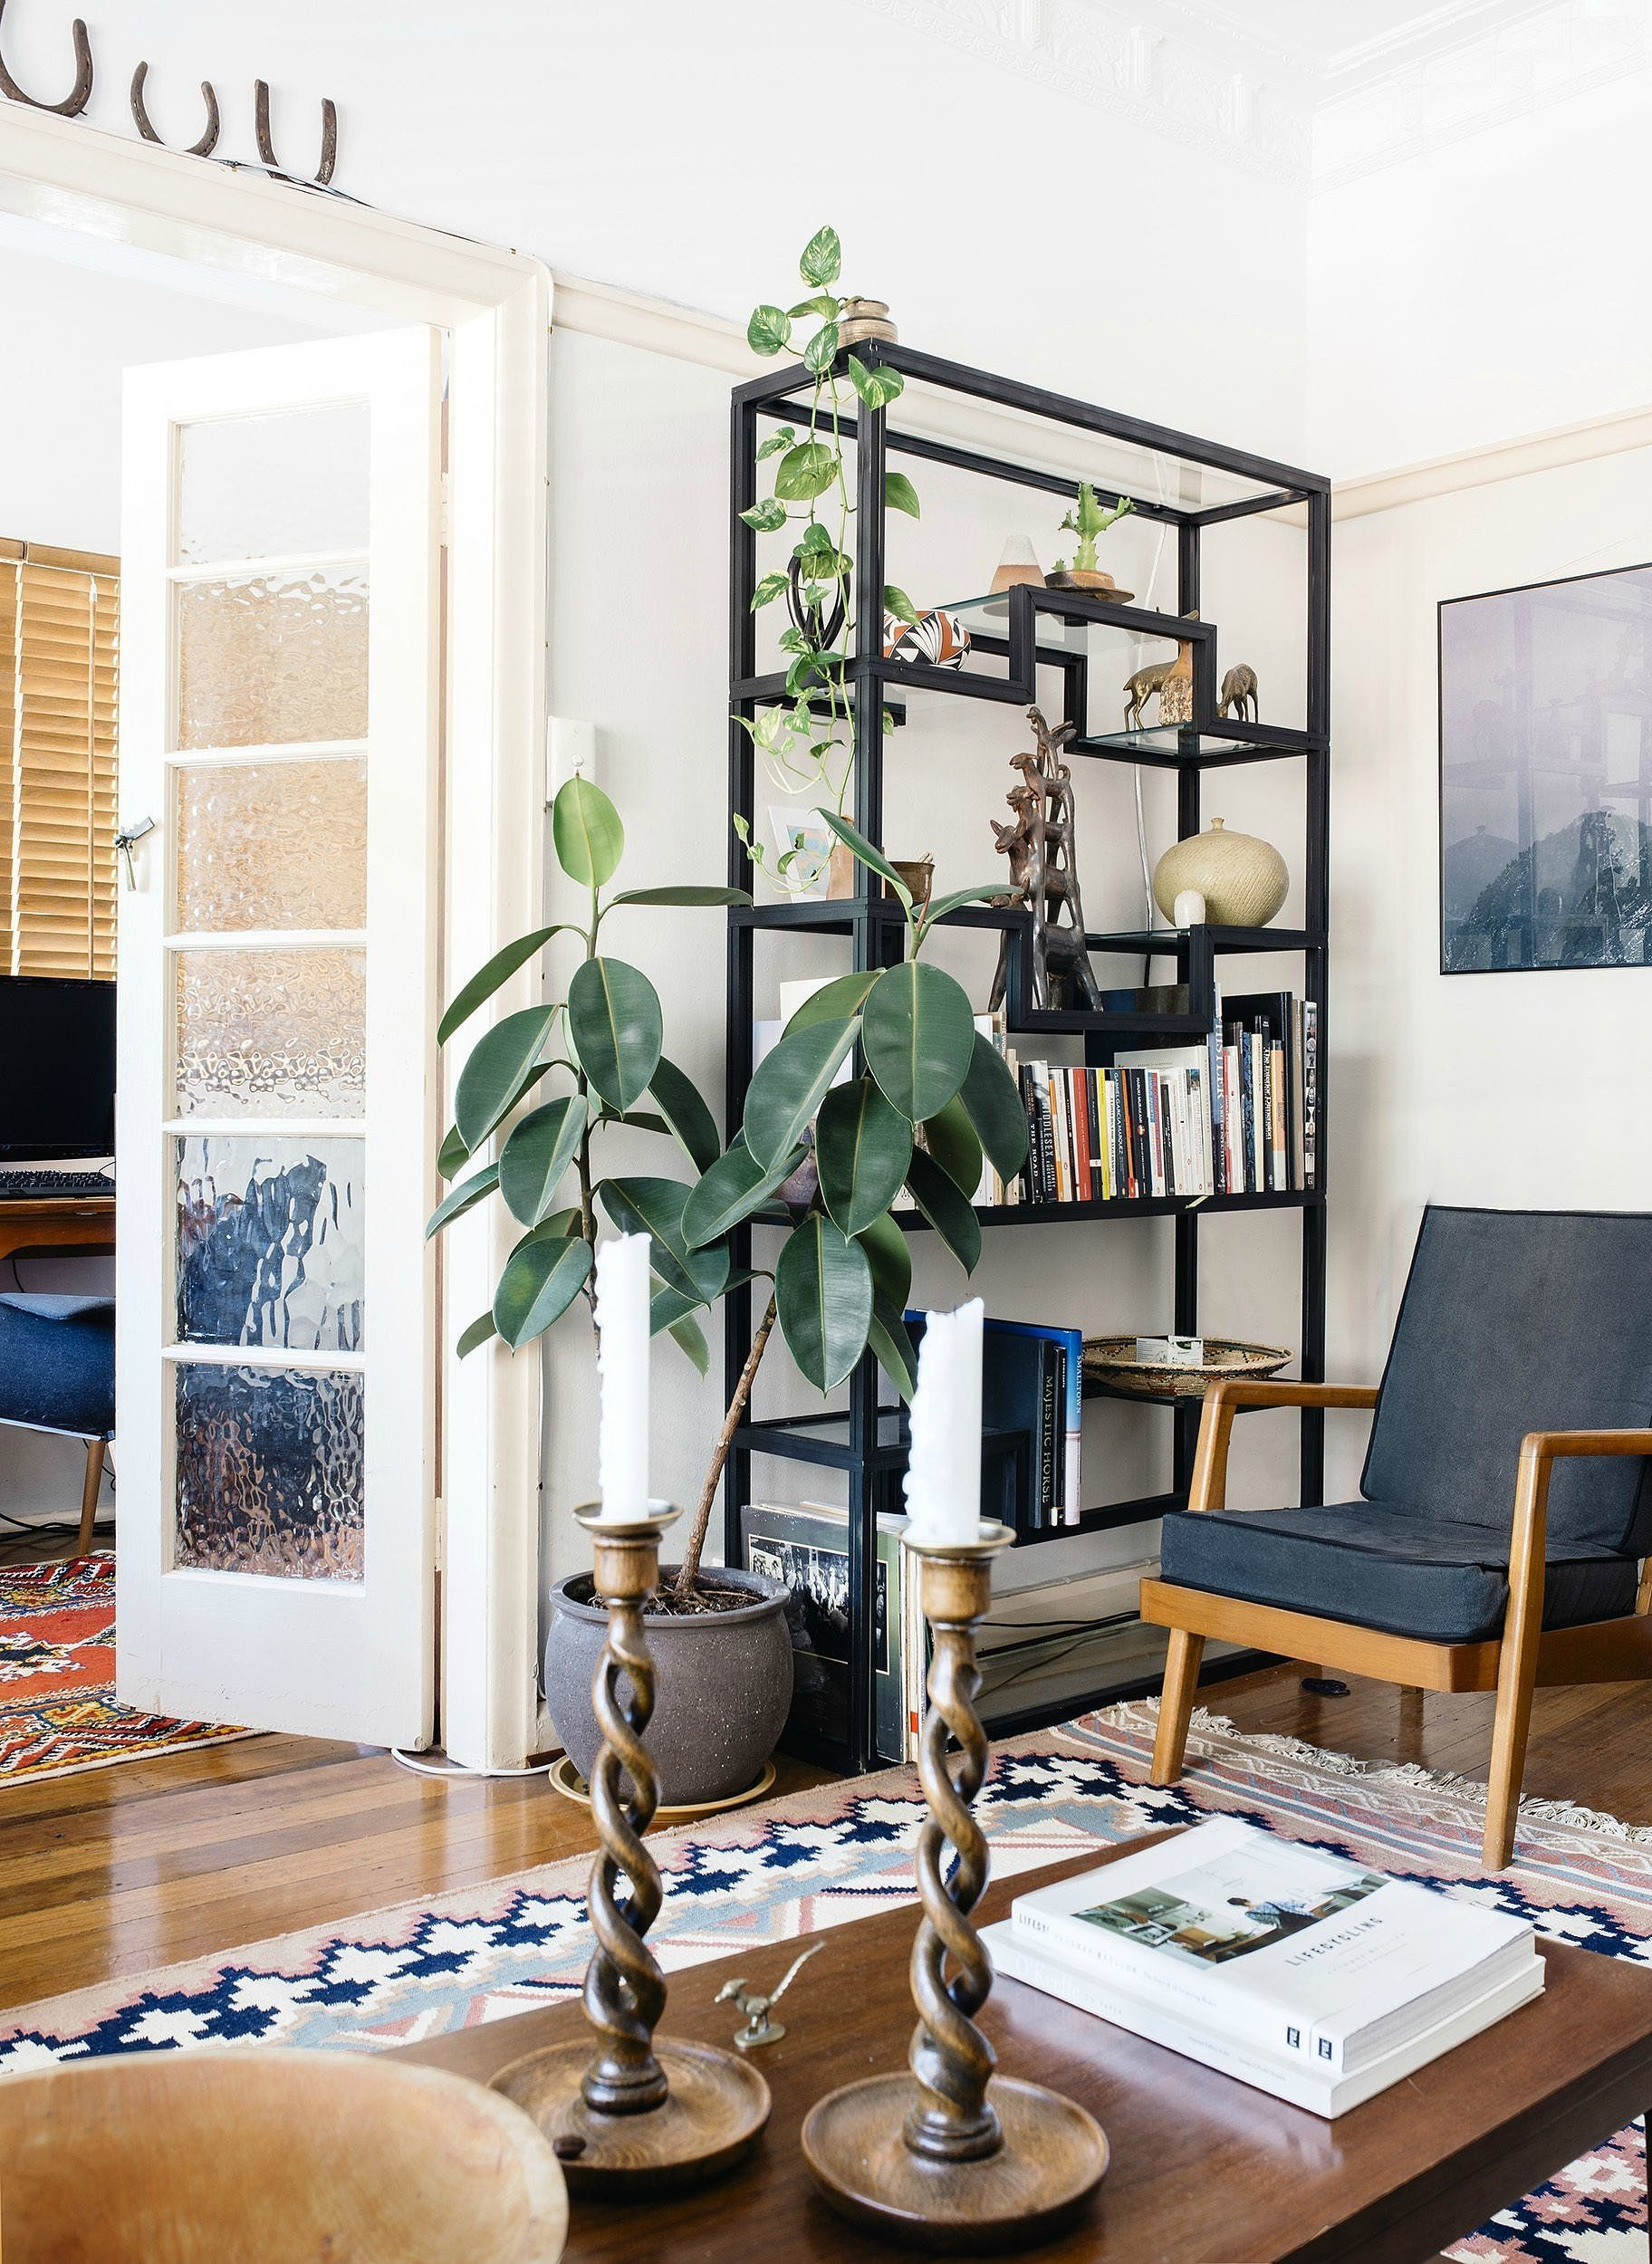 Apartment Decorating Reddit see why reddit is freaking out over this apartment | apartments